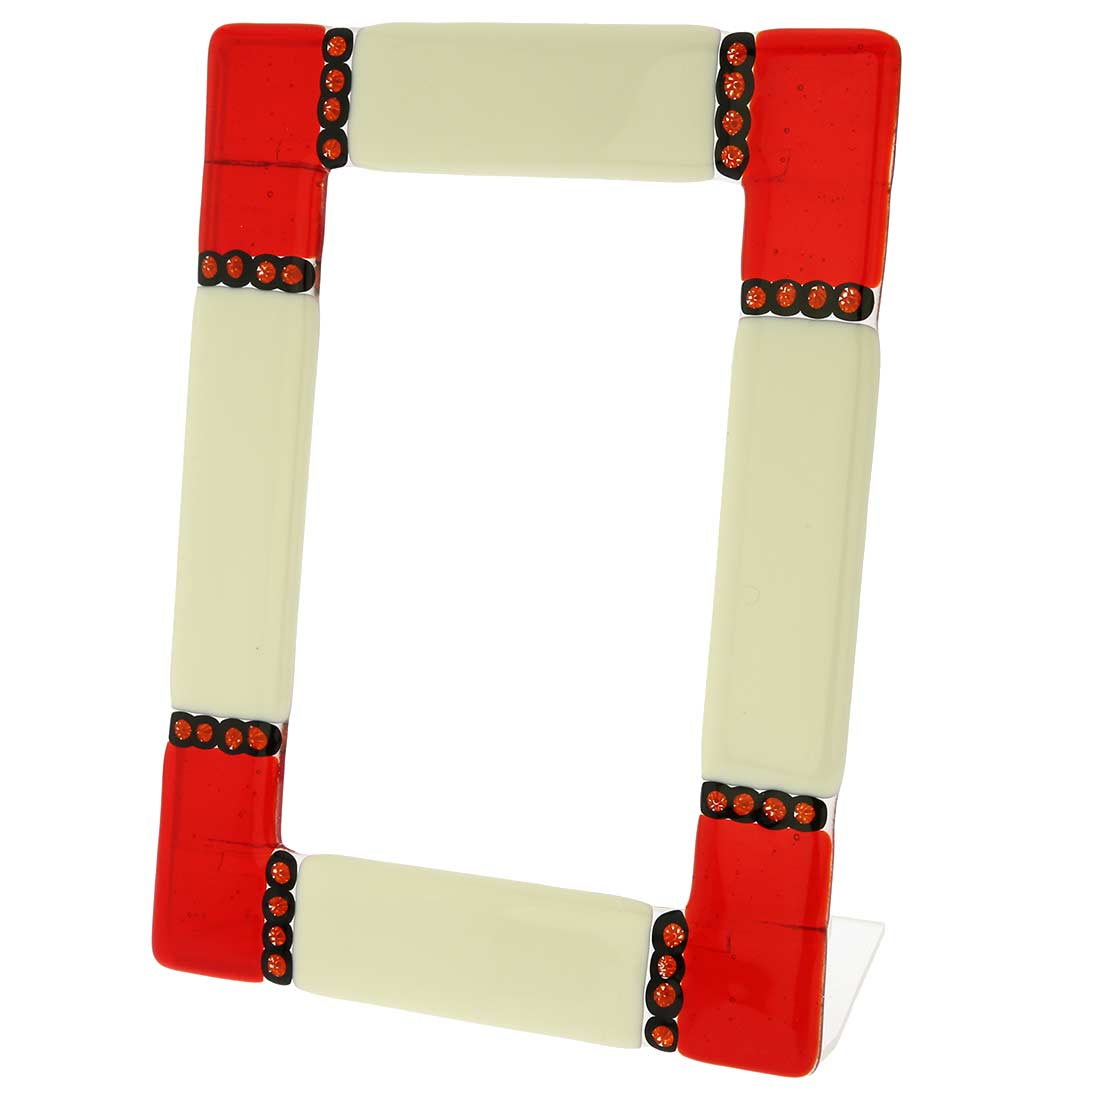 Murano Glass Photo Frame Ducale Red 4x6 inch